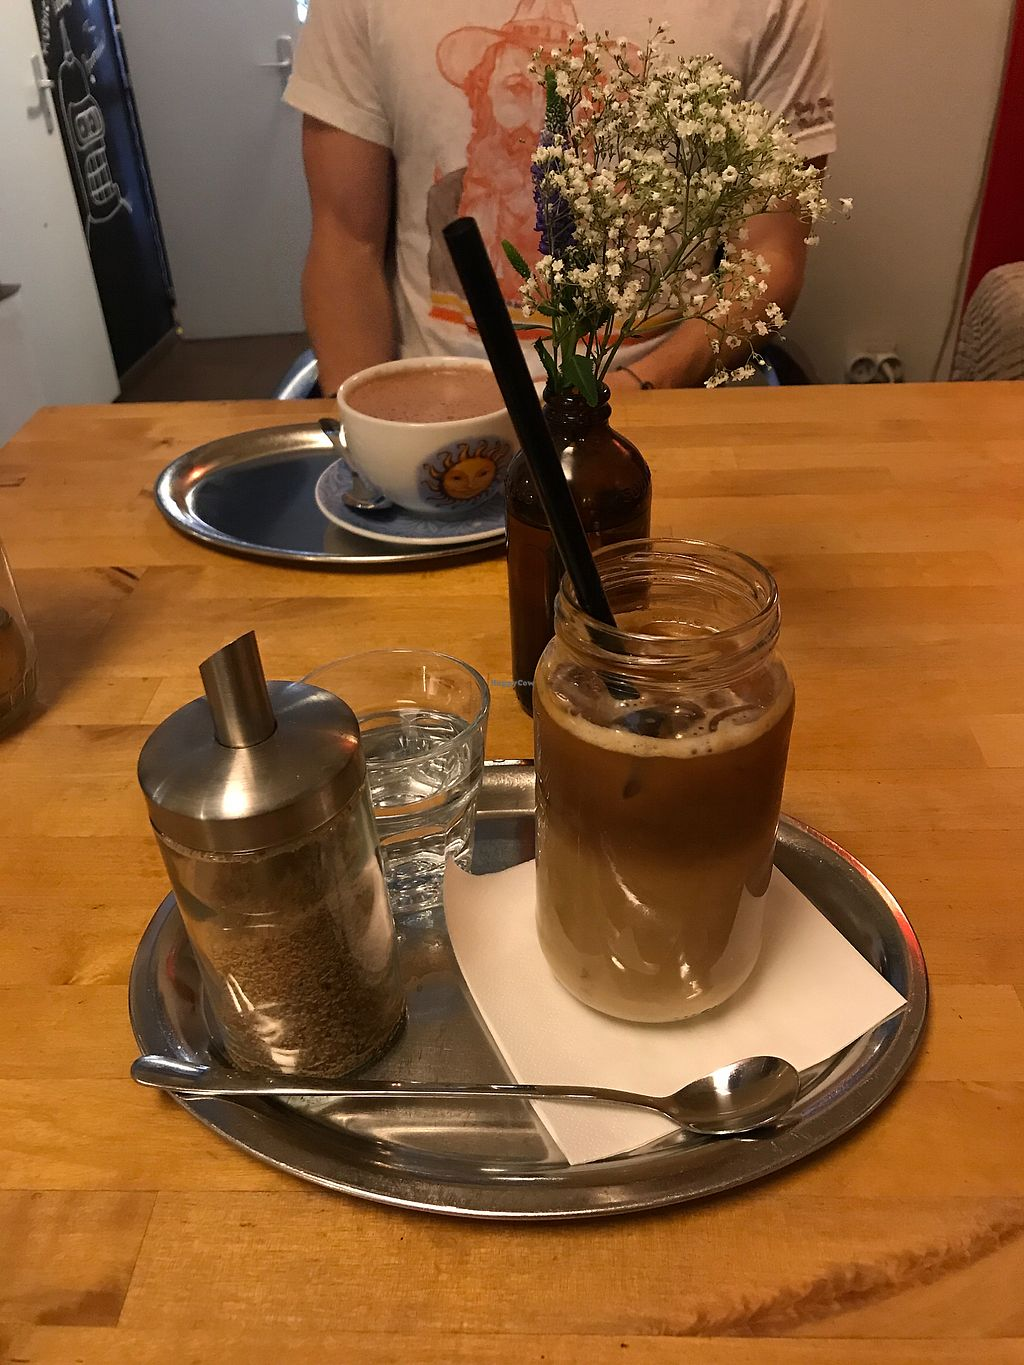 """Photo of Sicily Cafe  by <a href=""""/members/profile/megcanical"""">megcanical</a> <br/>Iced latte with soy <br/> March 12, 2018  - <a href='/contact/abuse/image/40071/369681'>Report</a>"""